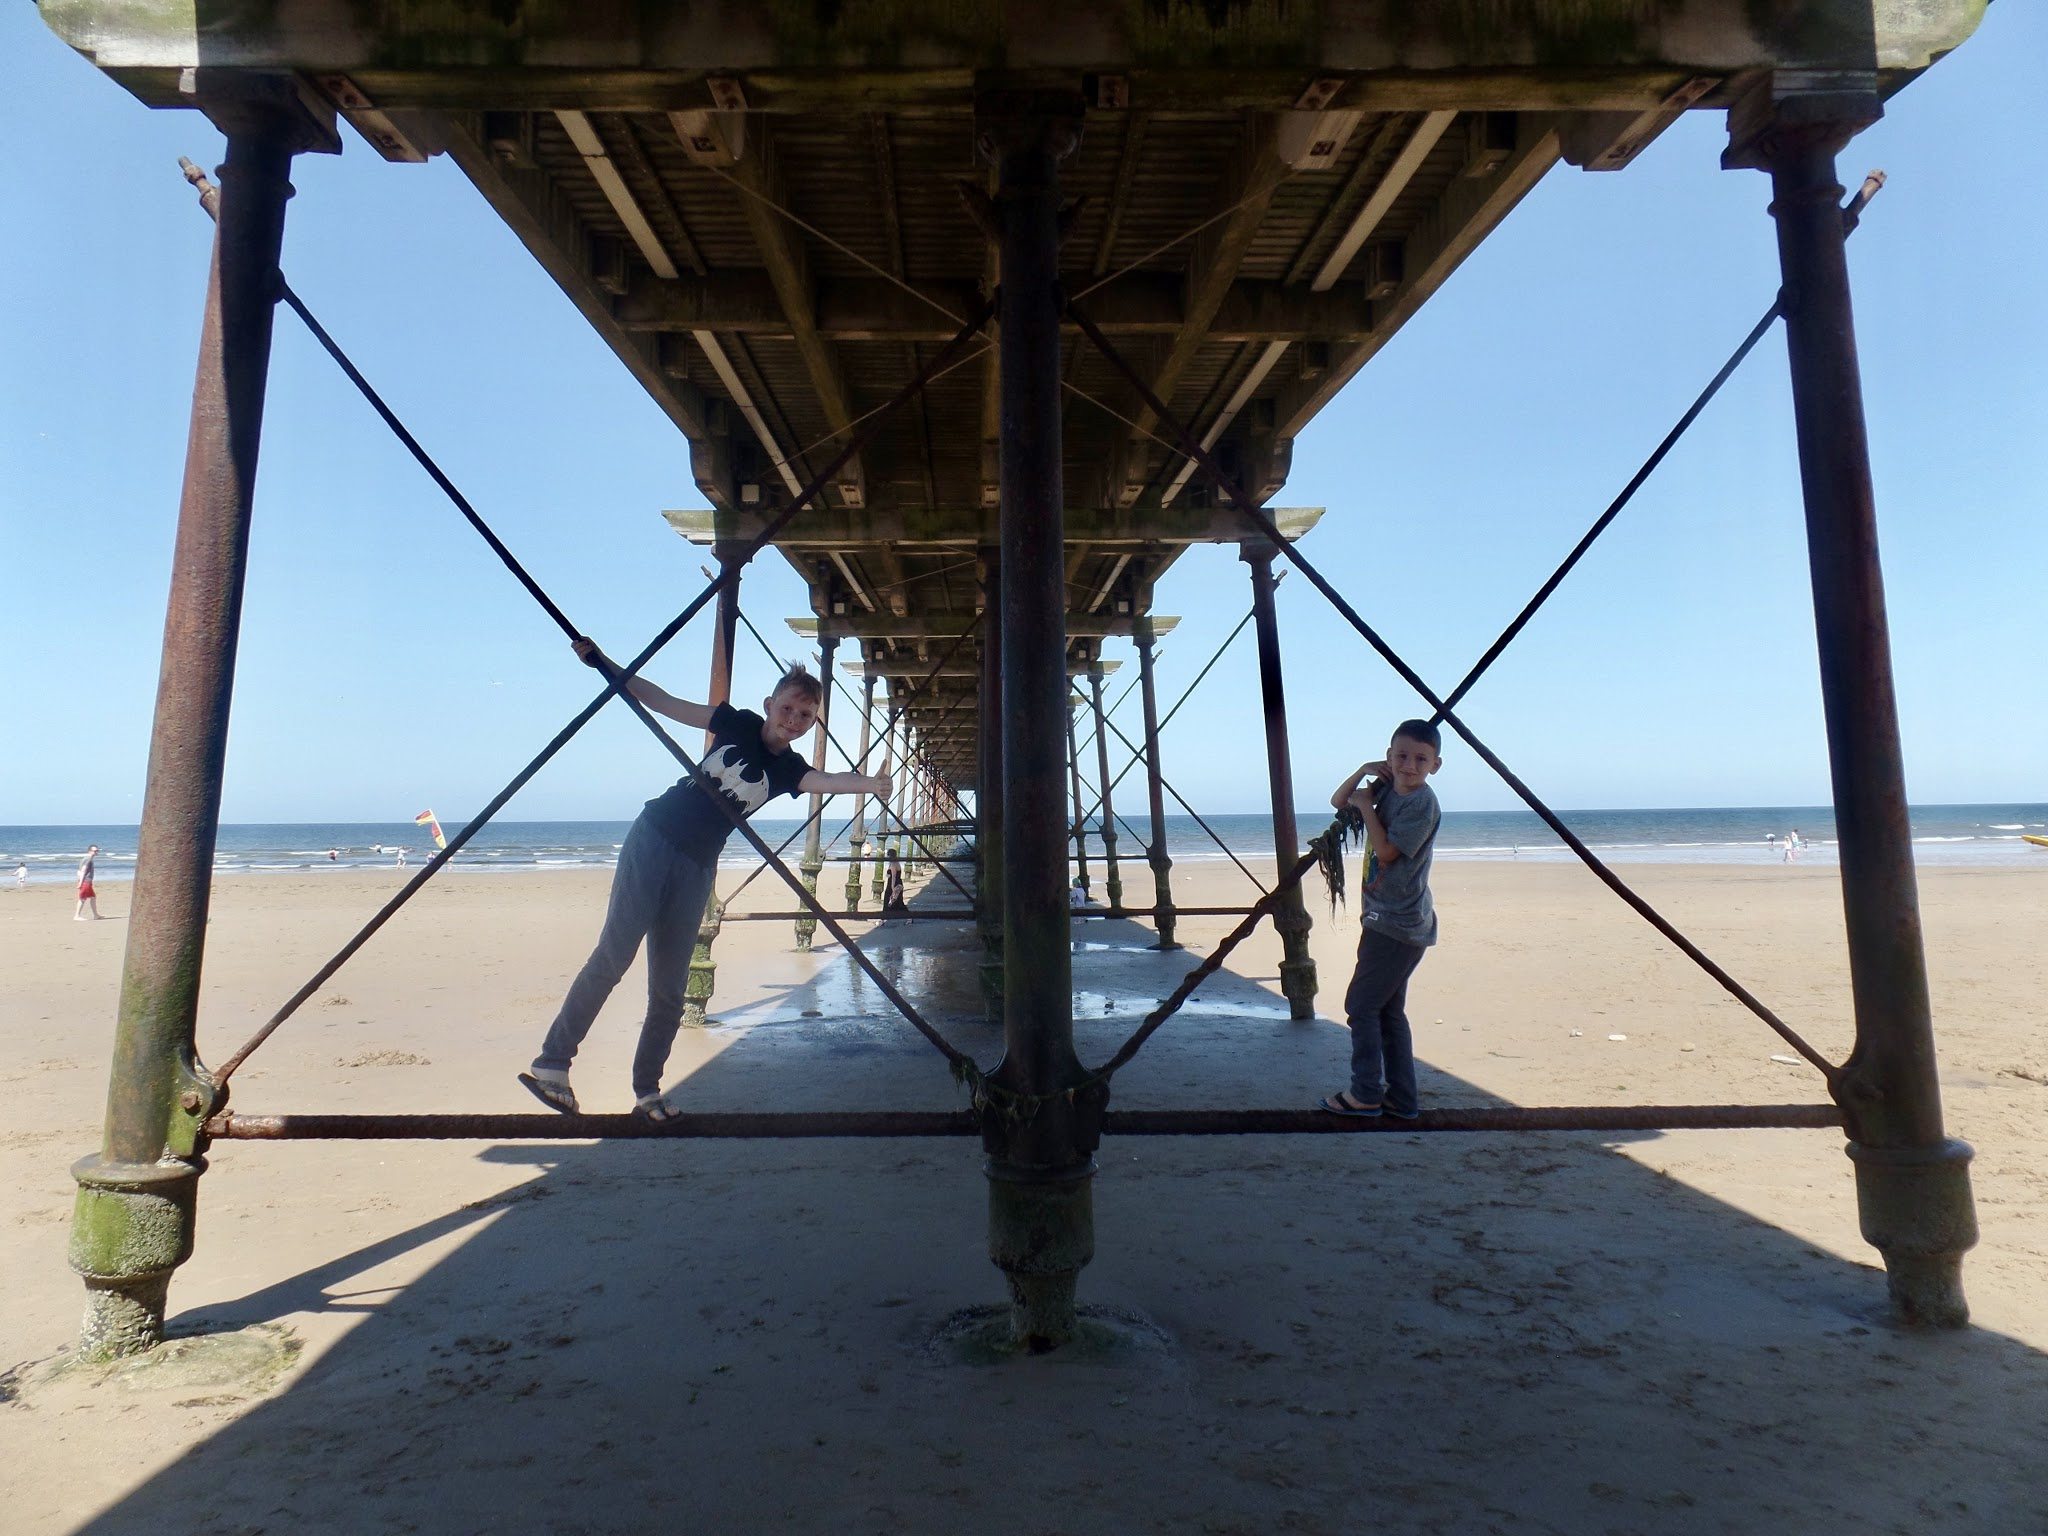 View under the pier with 2 boys climbing on the pier